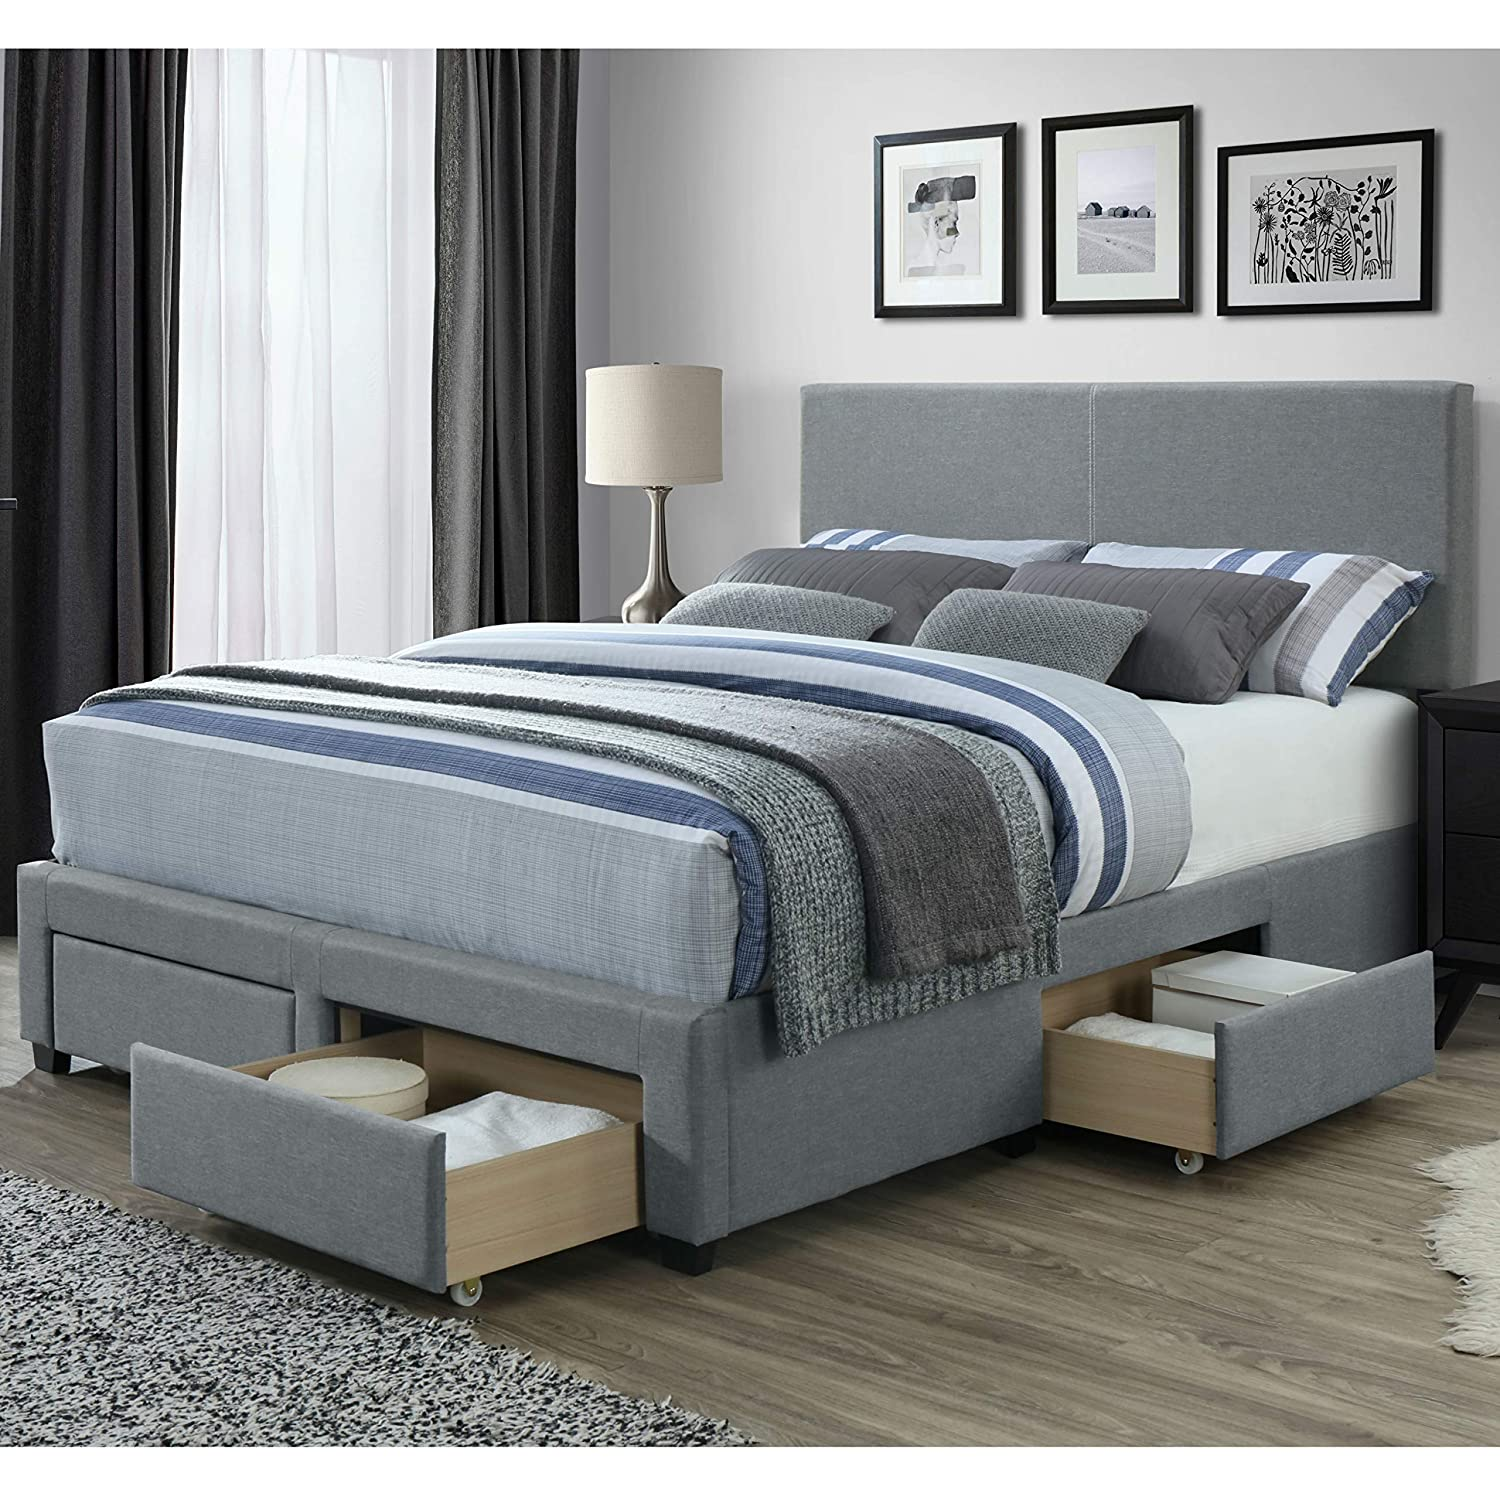 Dg Casa Kelly Panel Bed Frame With Storage Drawers And Upholstered